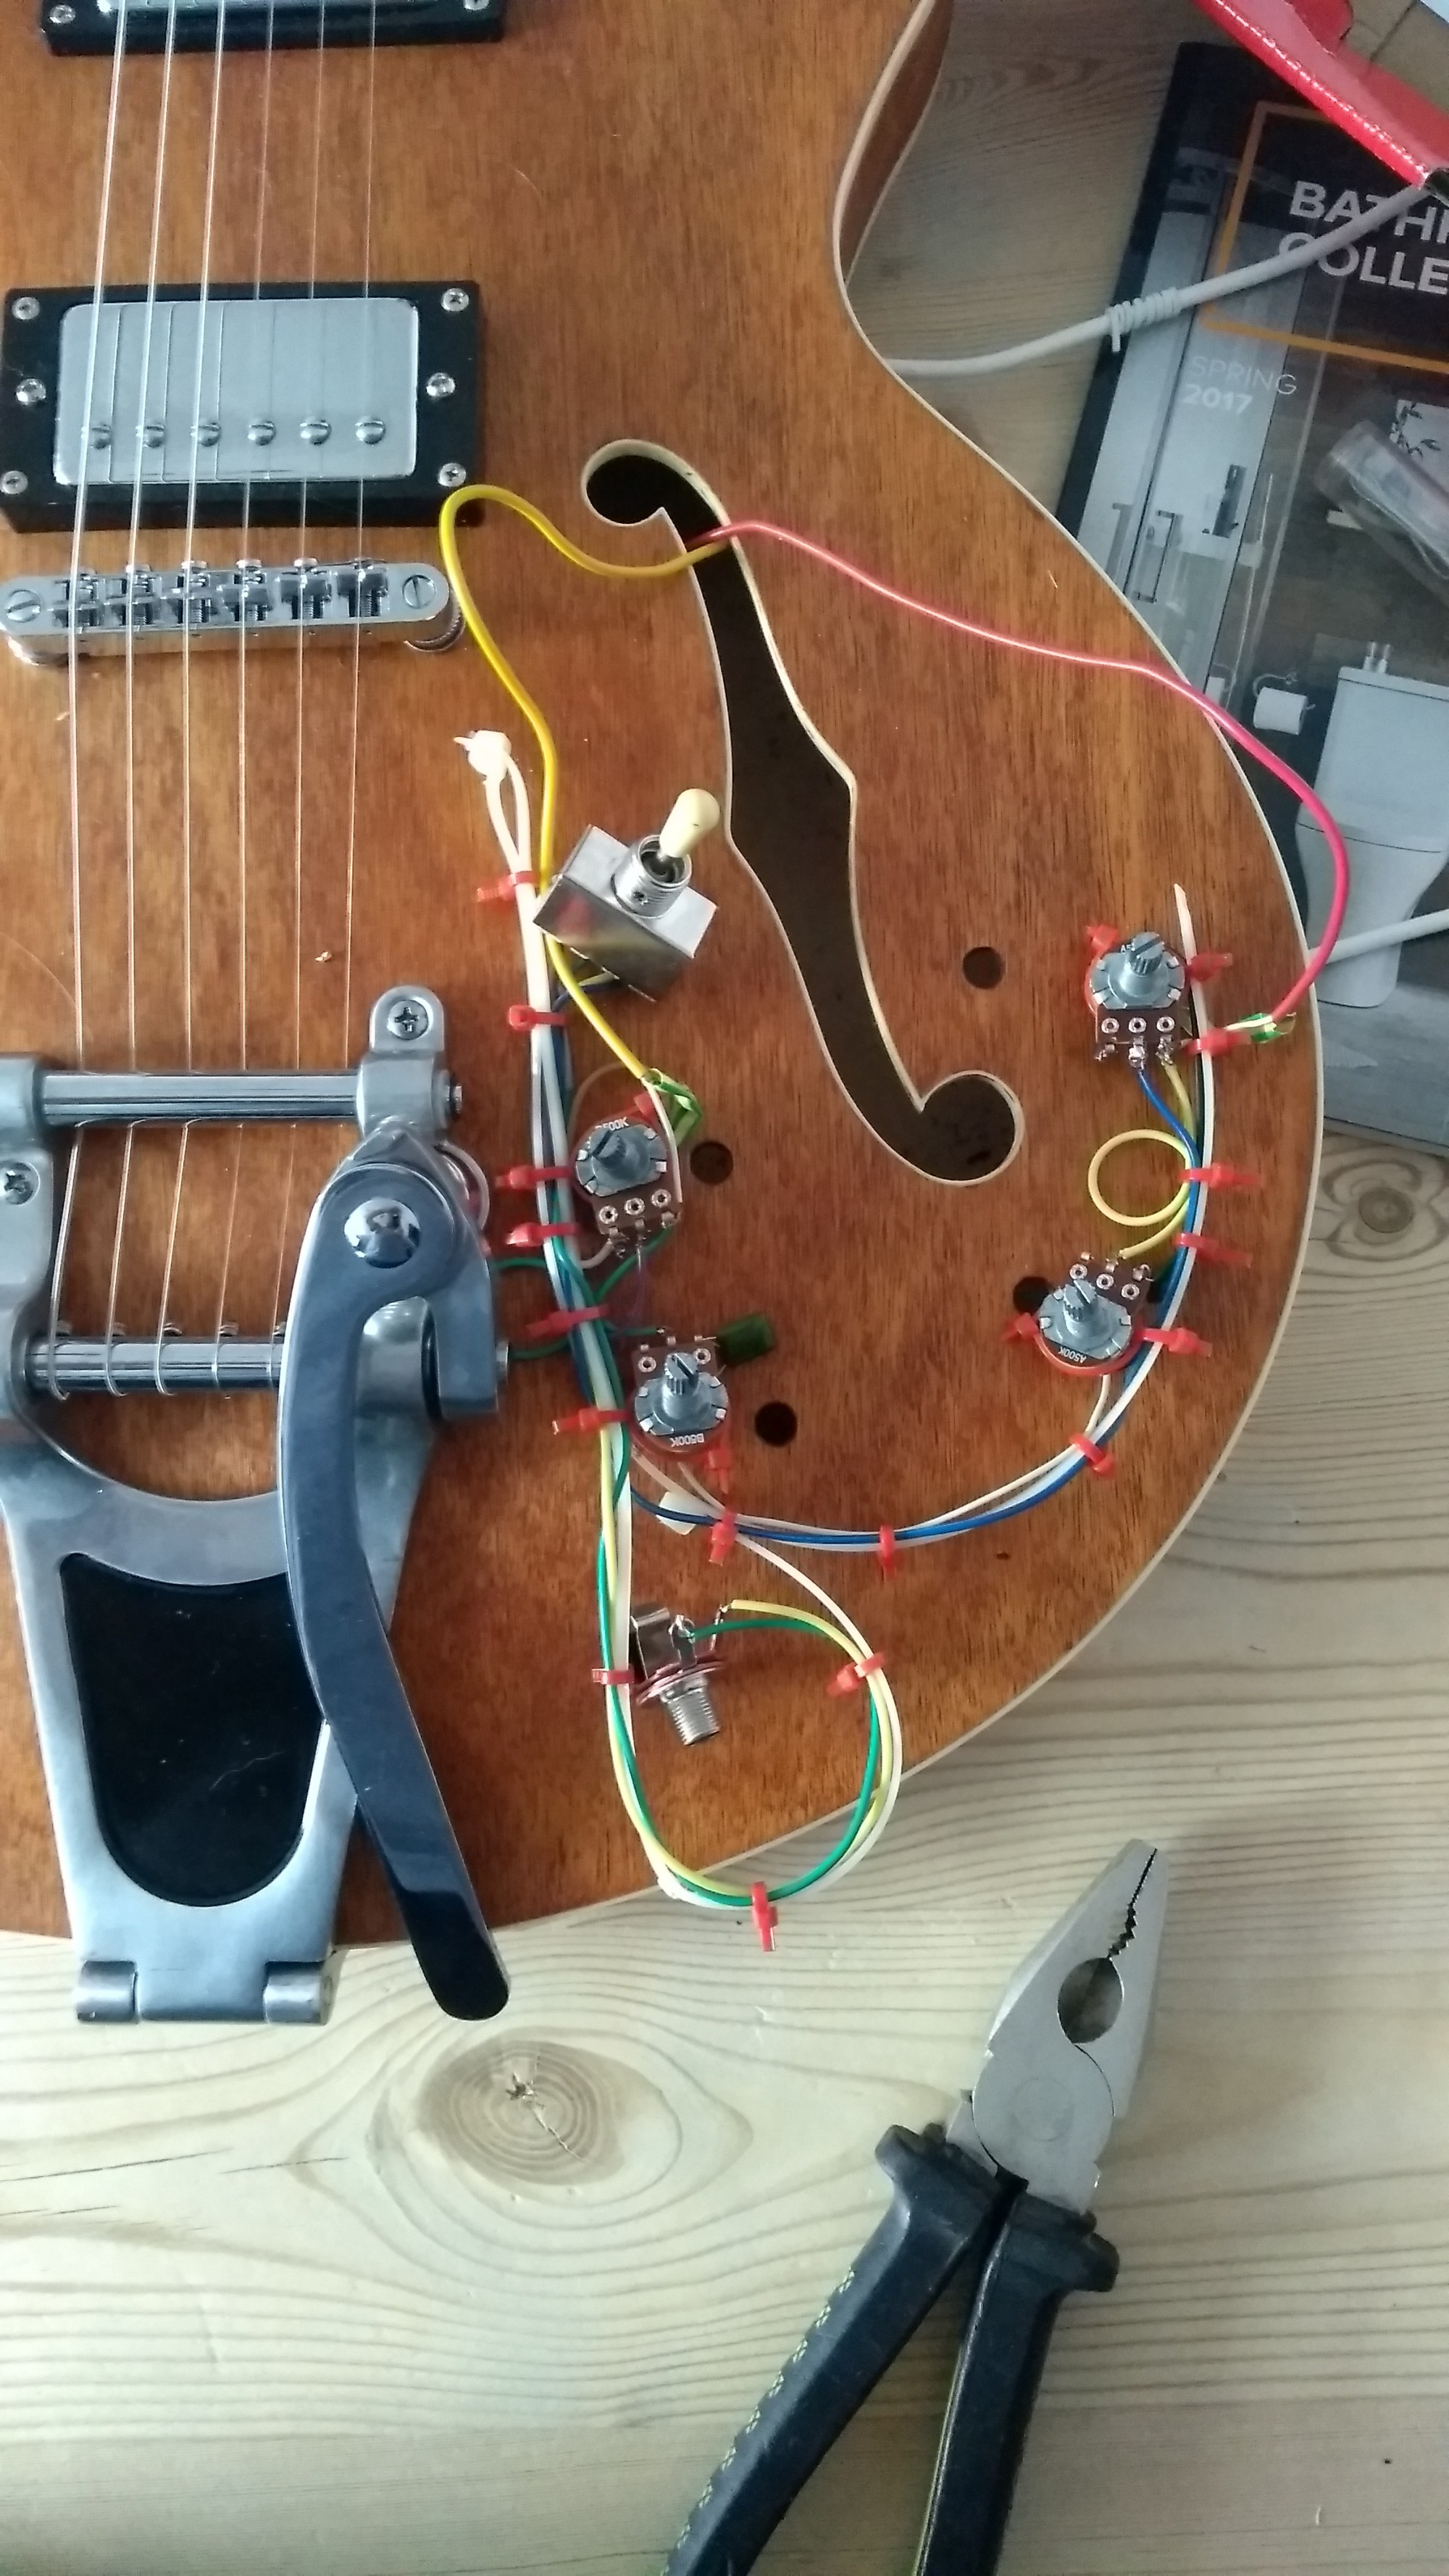 hight resolution of diy guitar u2013 the wiring day 2 u2013 lunarfish